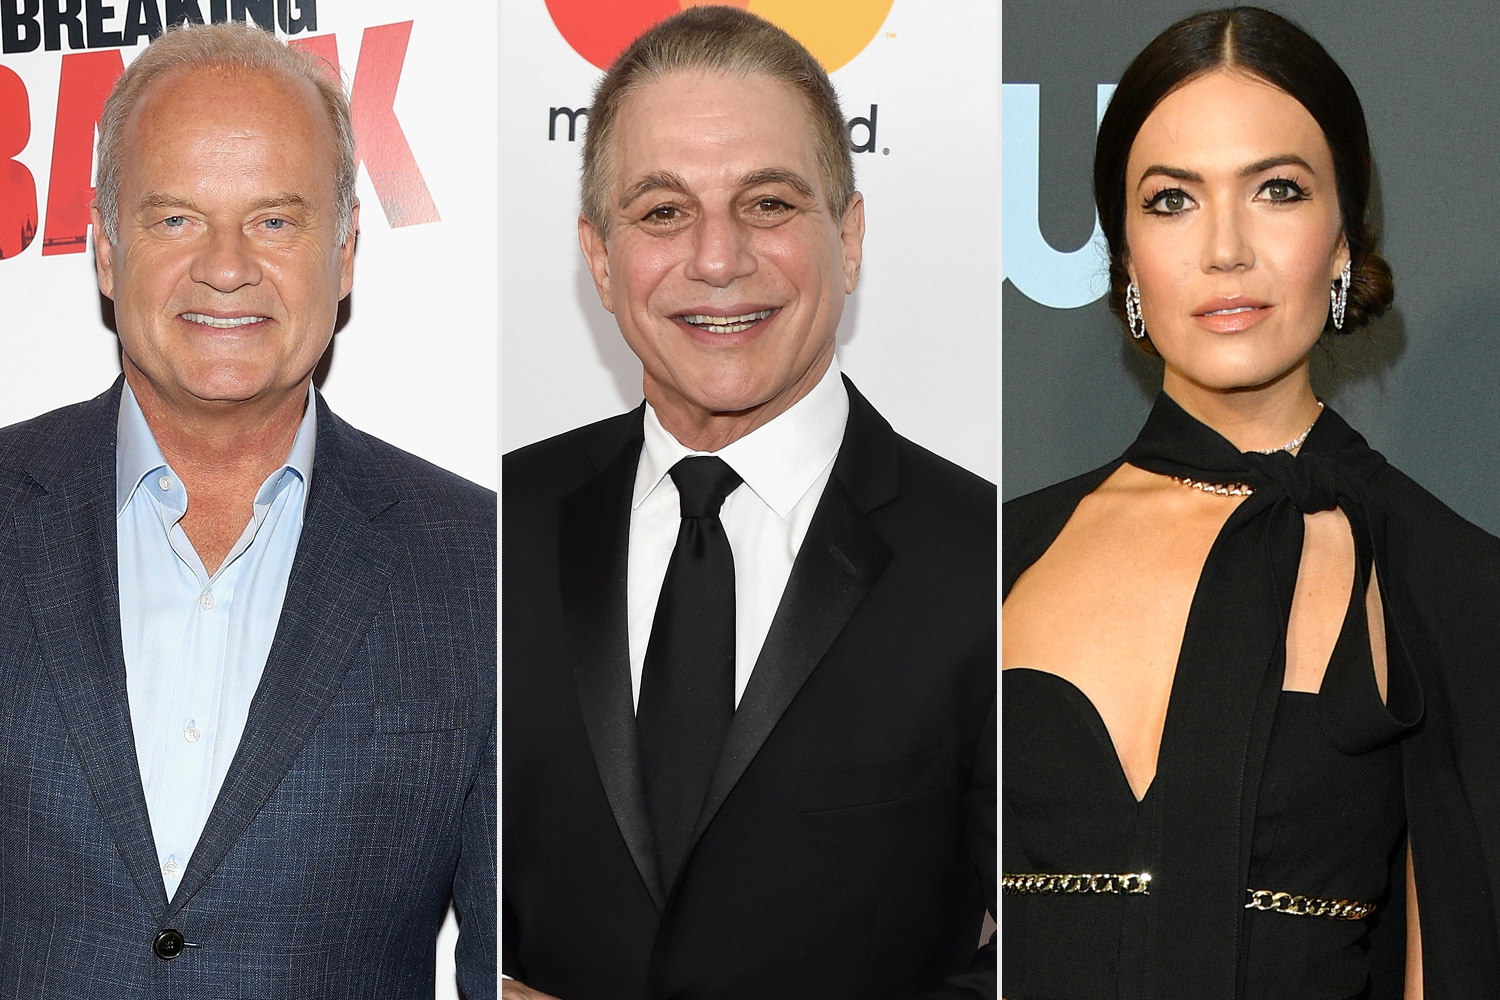 Kelsey Grammer, Tony Danza, and Mandy Moore